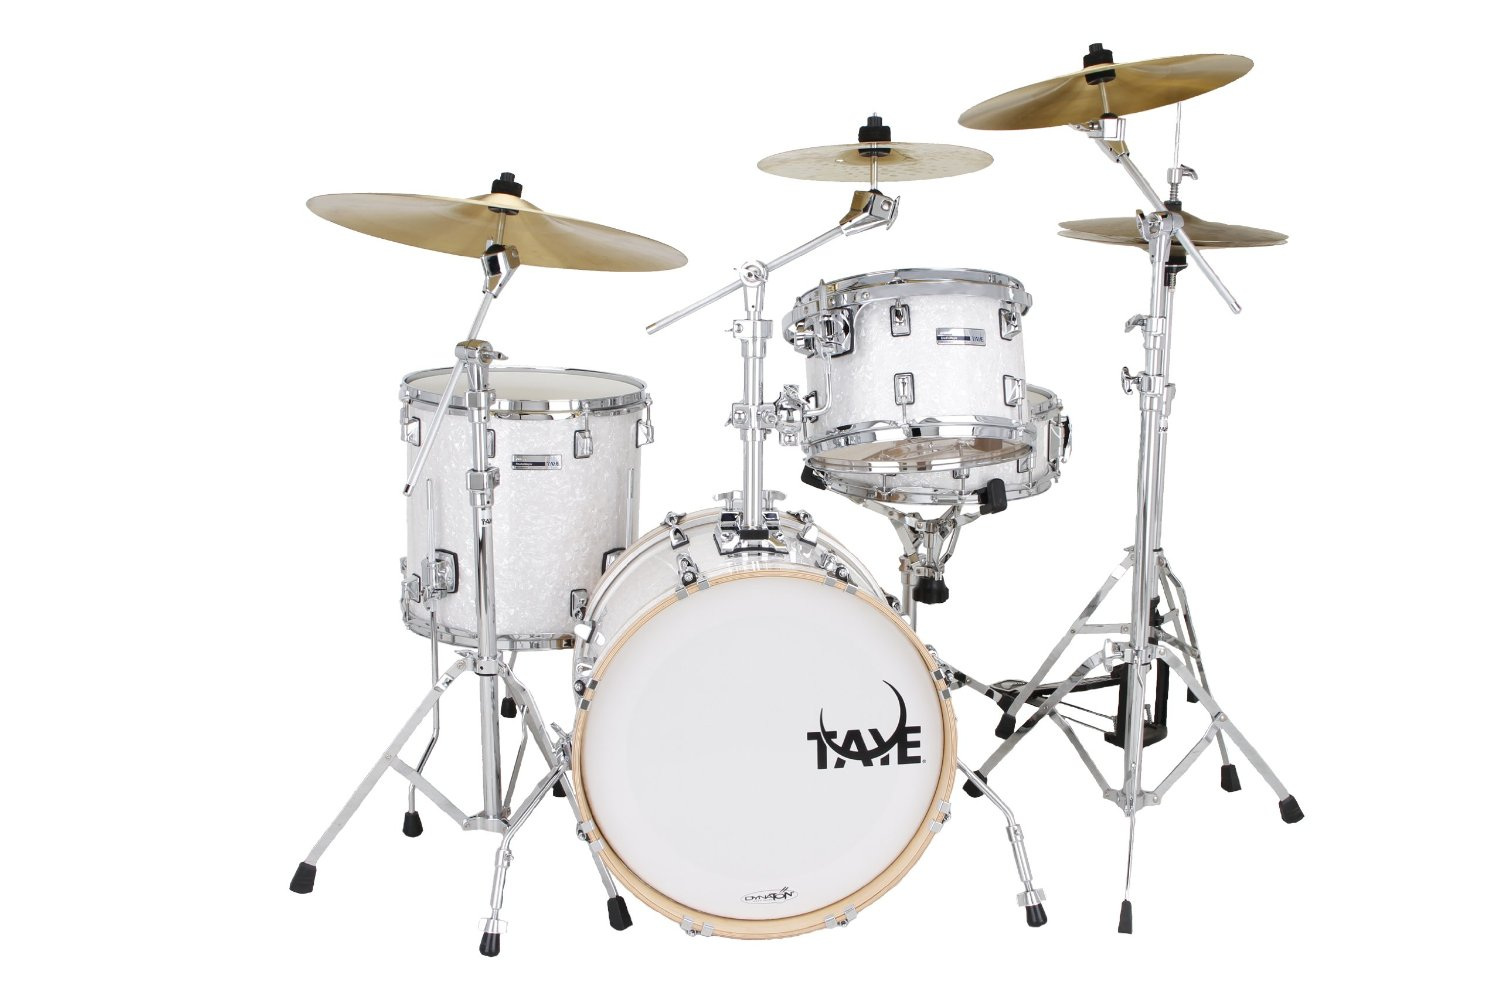 Detailed Taye StudioMaple BeBop Review